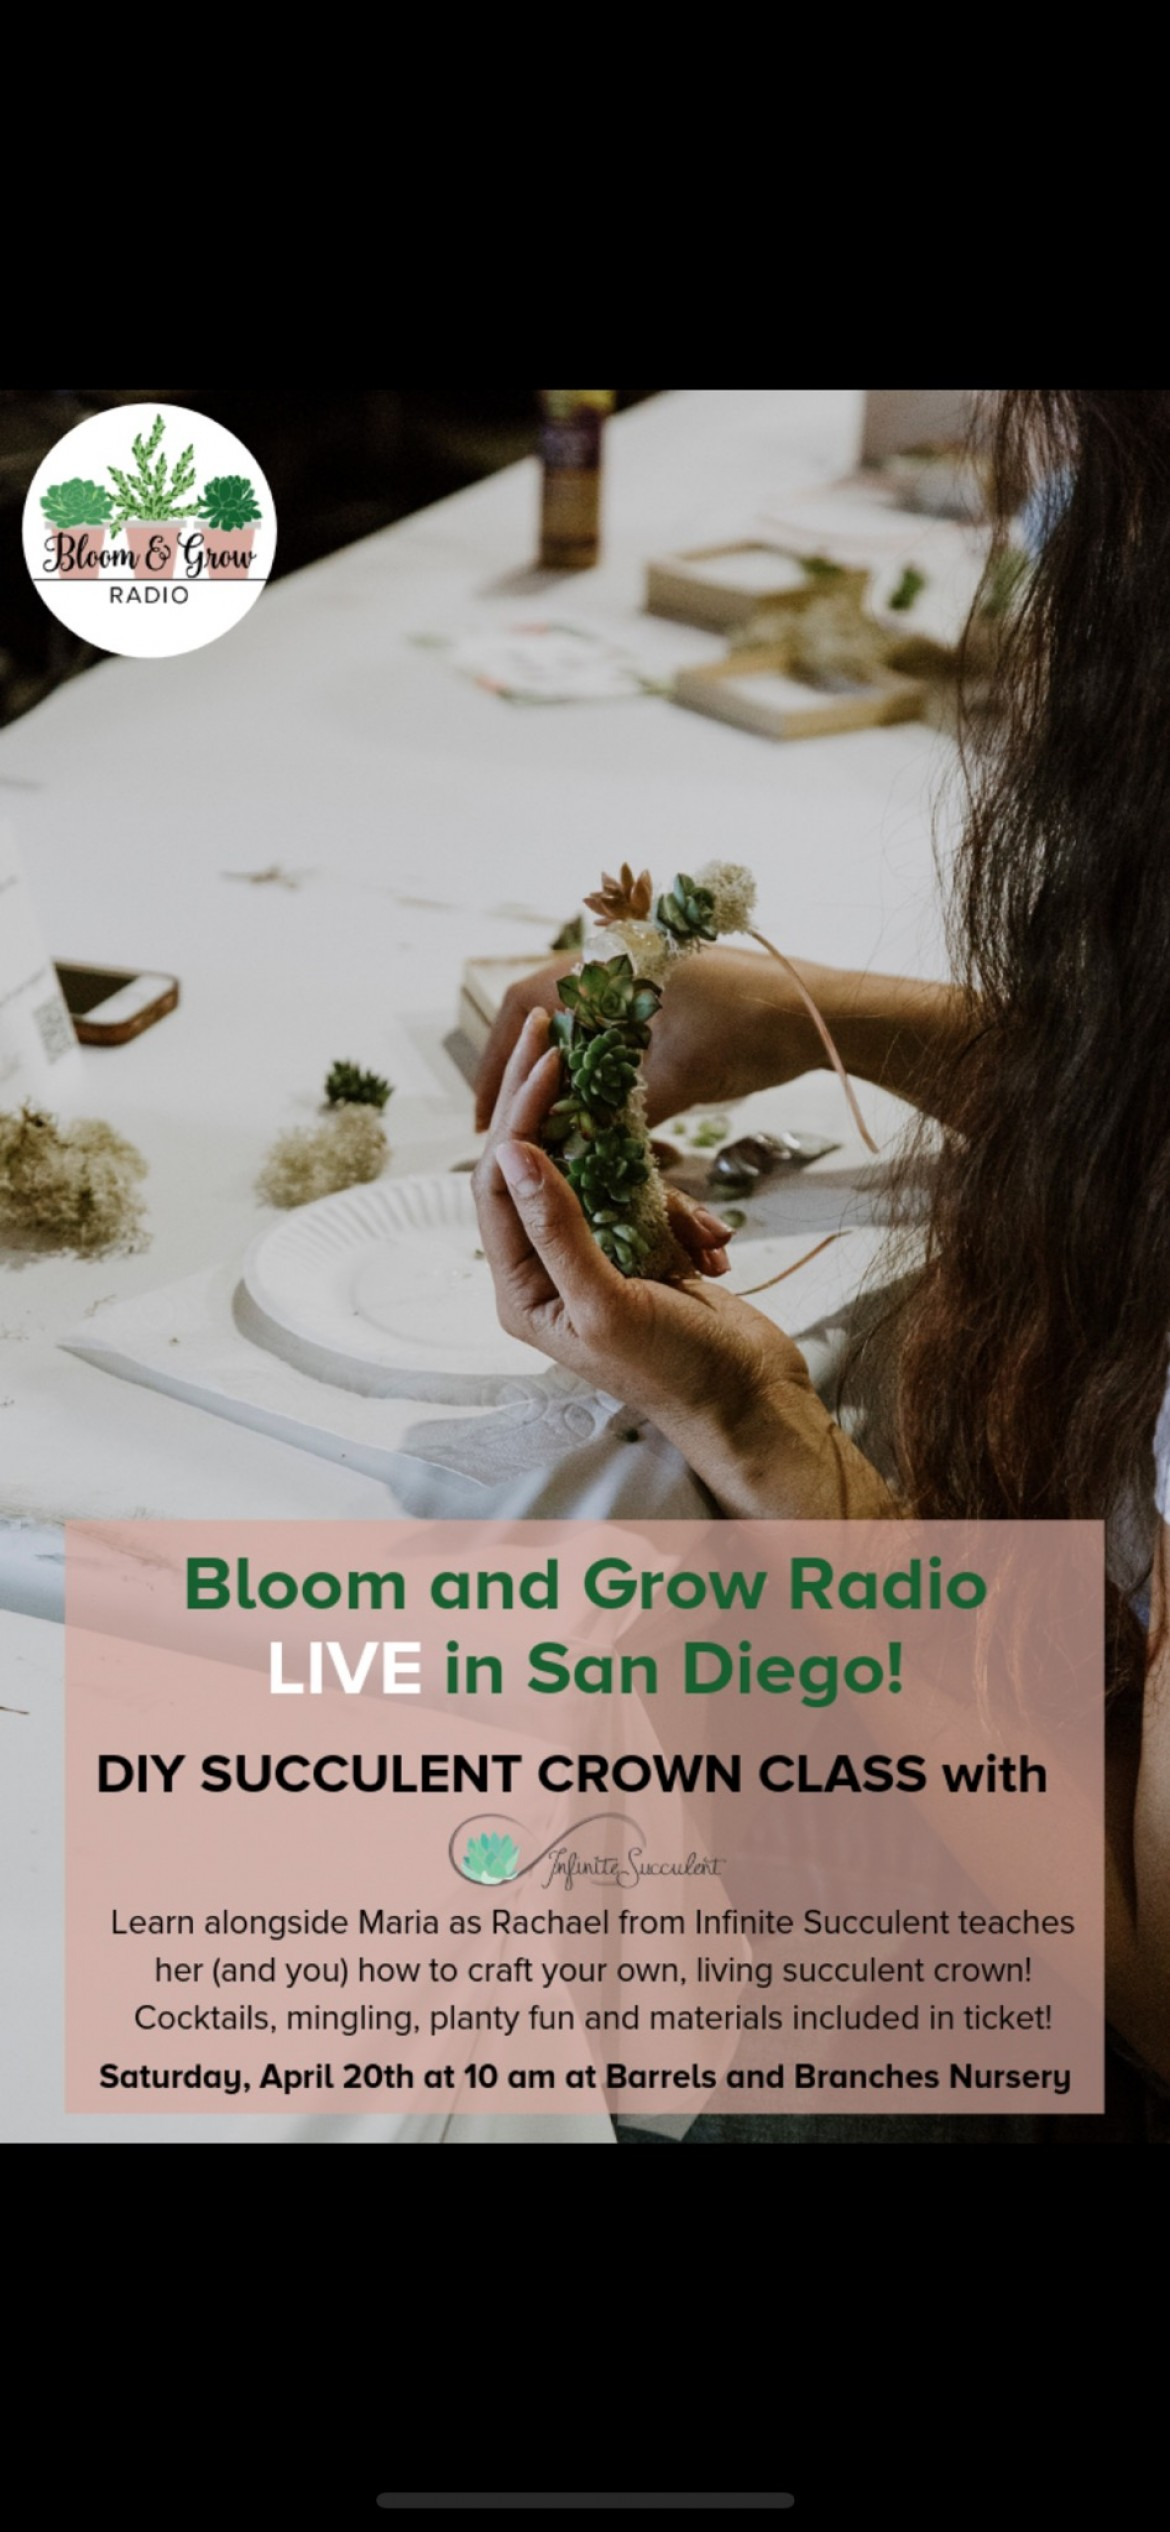 DIY Succulent Crown Workshop during Bloom & Grow Radio Podcast Taping